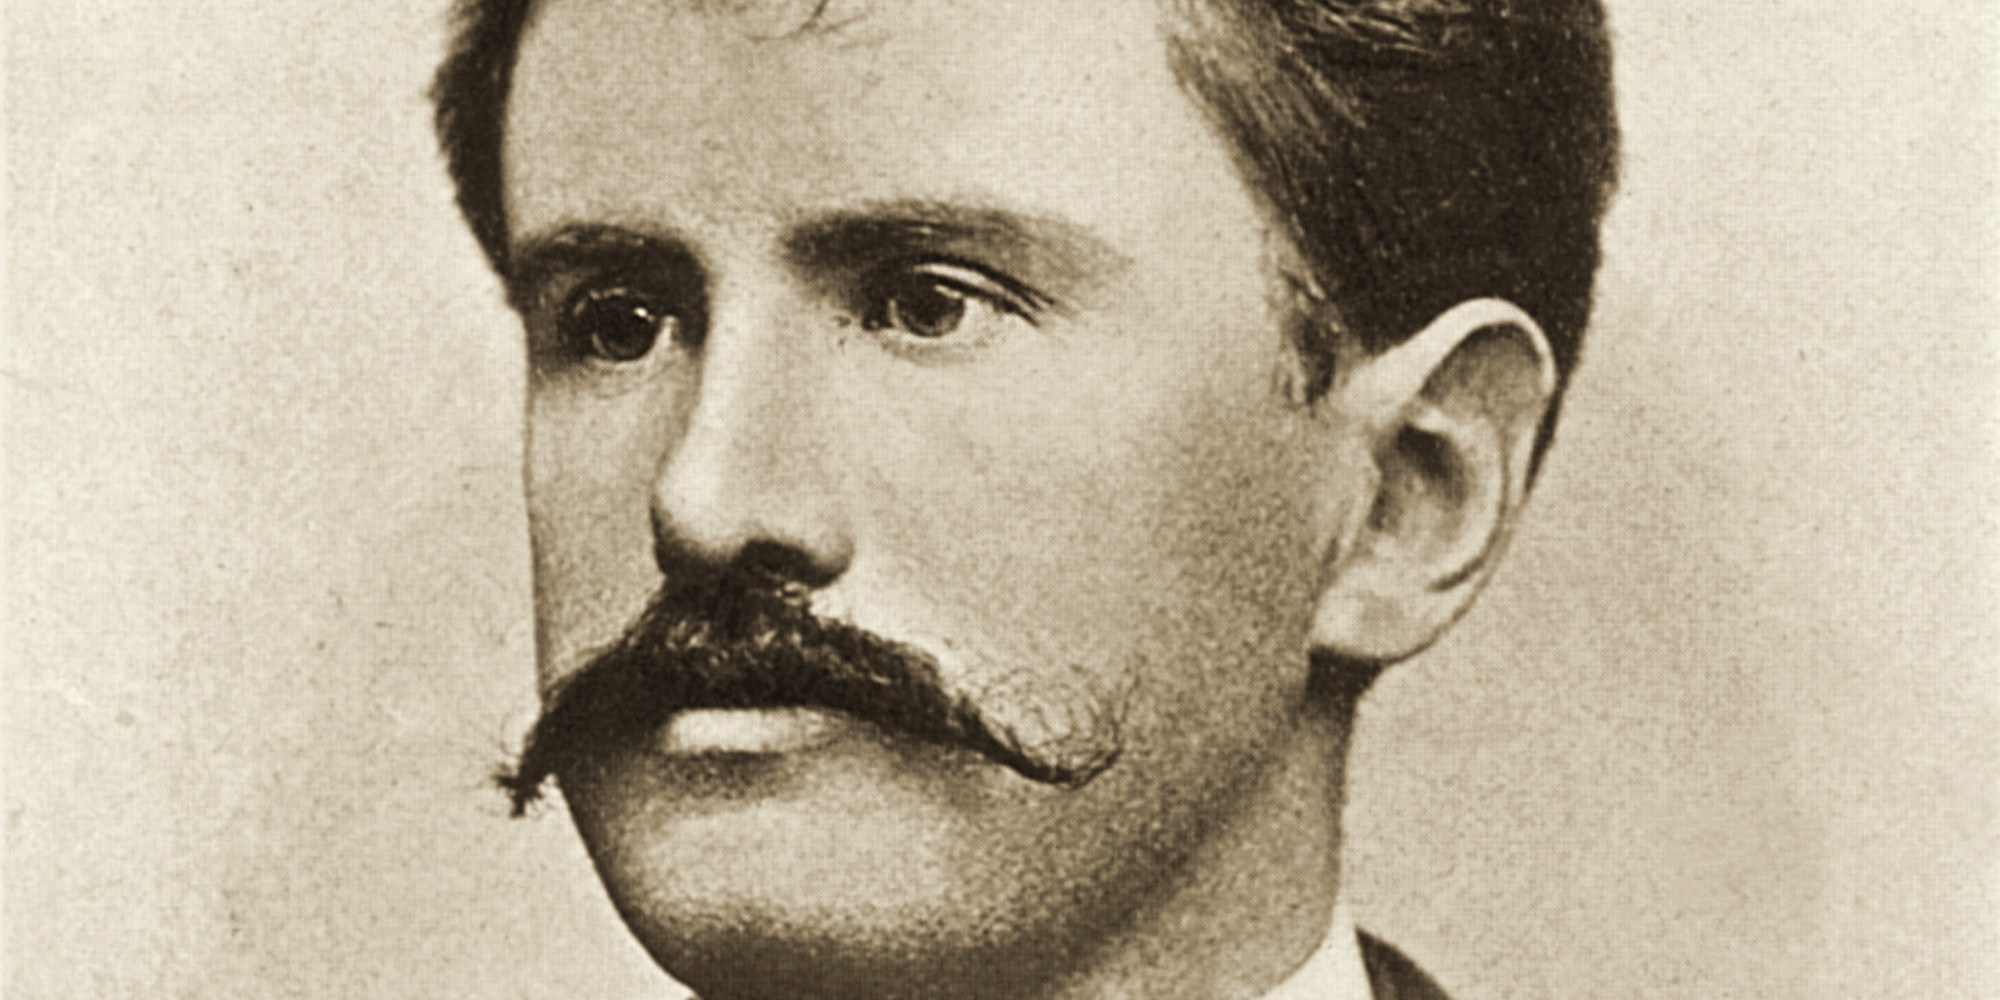 Portrait of American author William Sydney Porter (1862- 1910), more widely known by his pen-name of O. Henry, late 19th century. (Photo by Stock Montage/Getty Images)